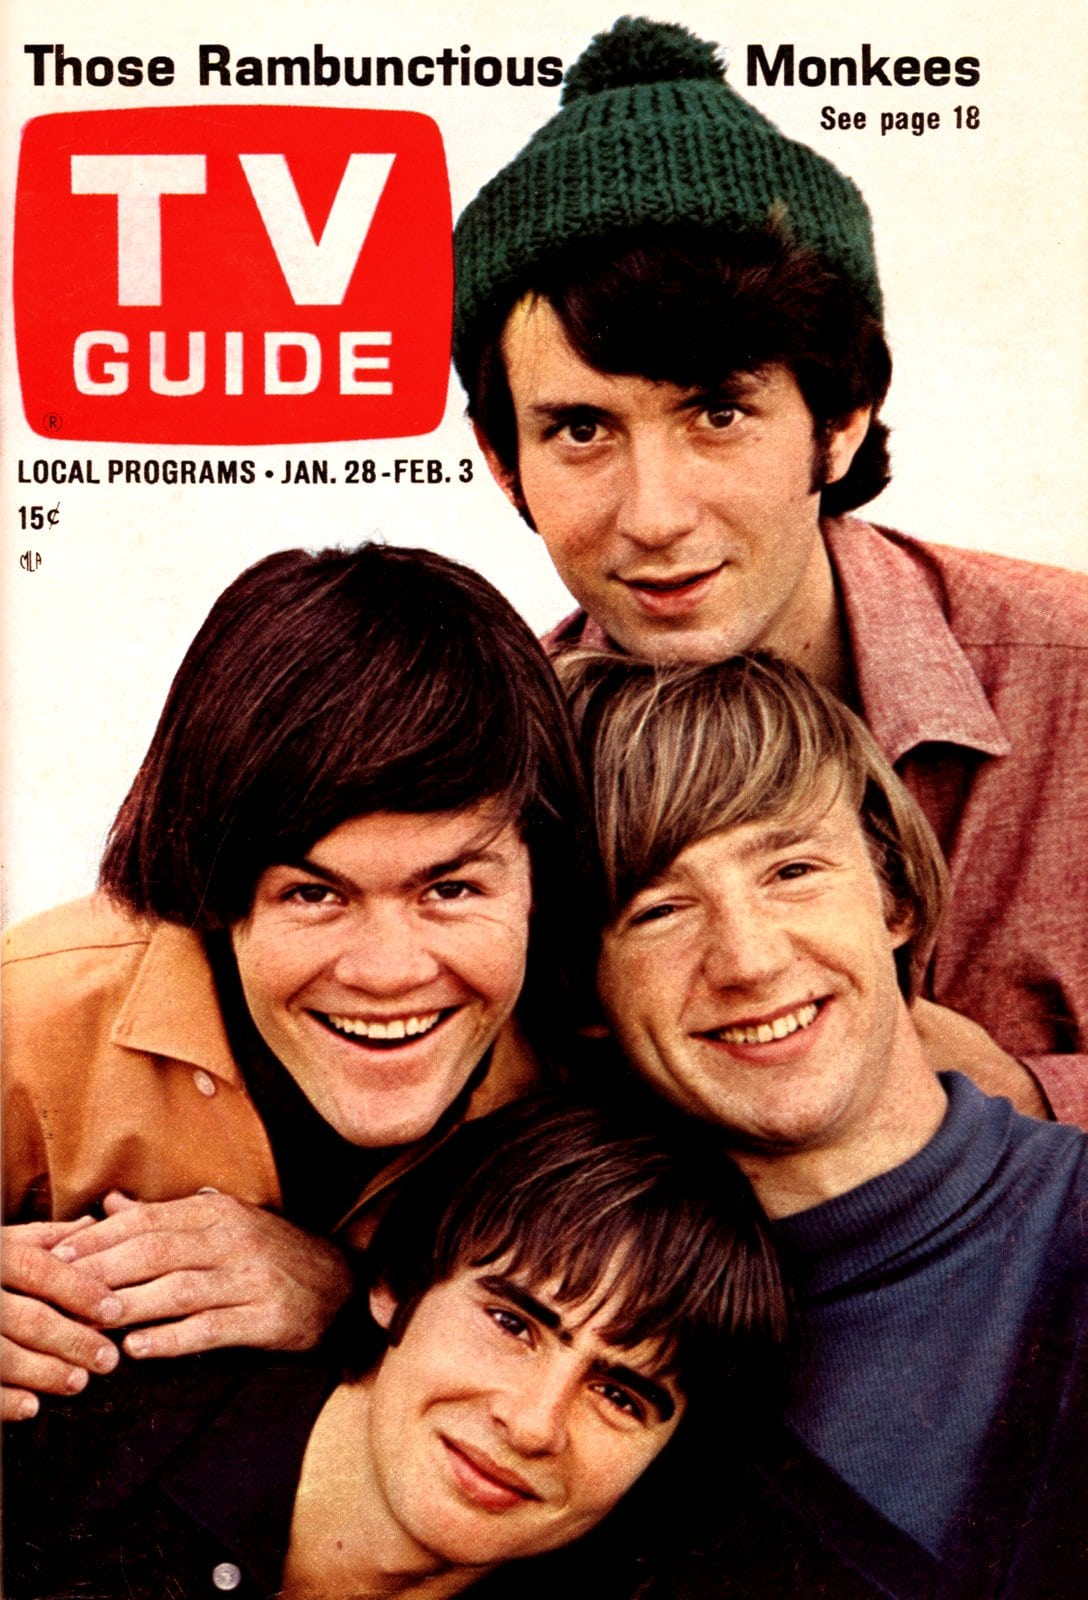 Monkees on the cover of TV Guide (1967)